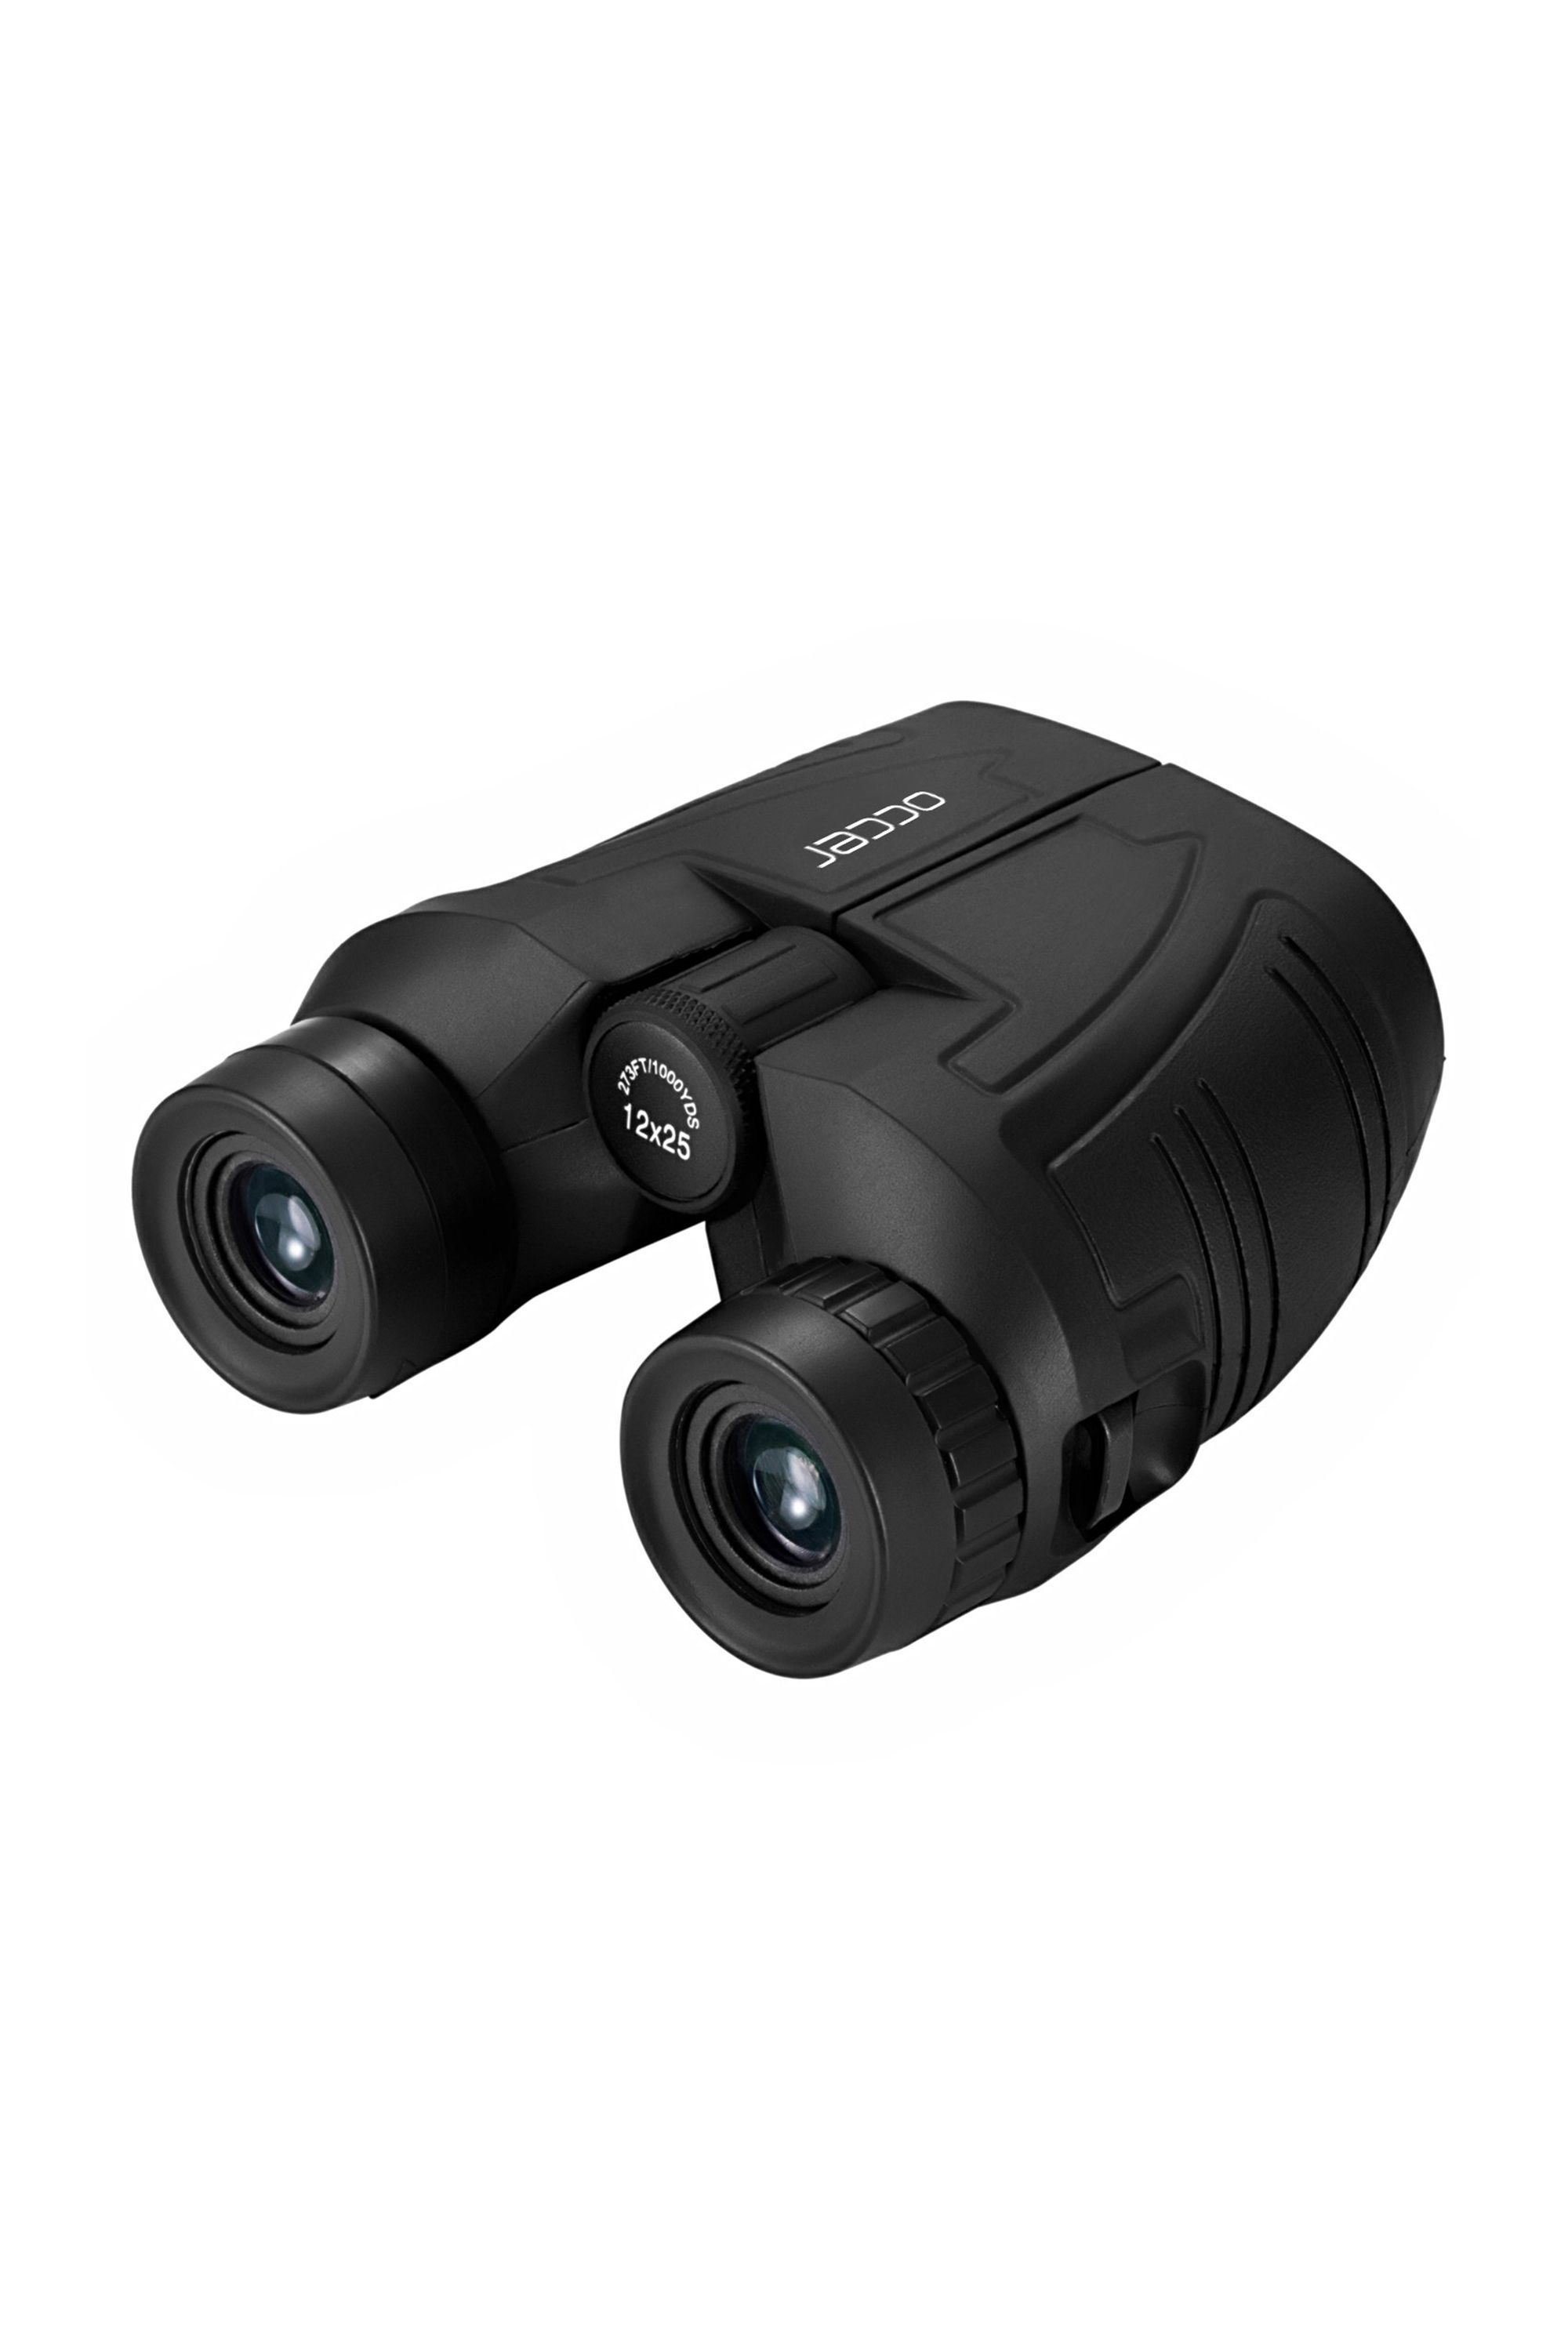 Compact Binoculars with Low Light Night Visio Occer amazon.com $32.99 SHOP NOW Whether they're into star gazing or bird watching, these Occer binoculars will make a huge impact on their hobbies.